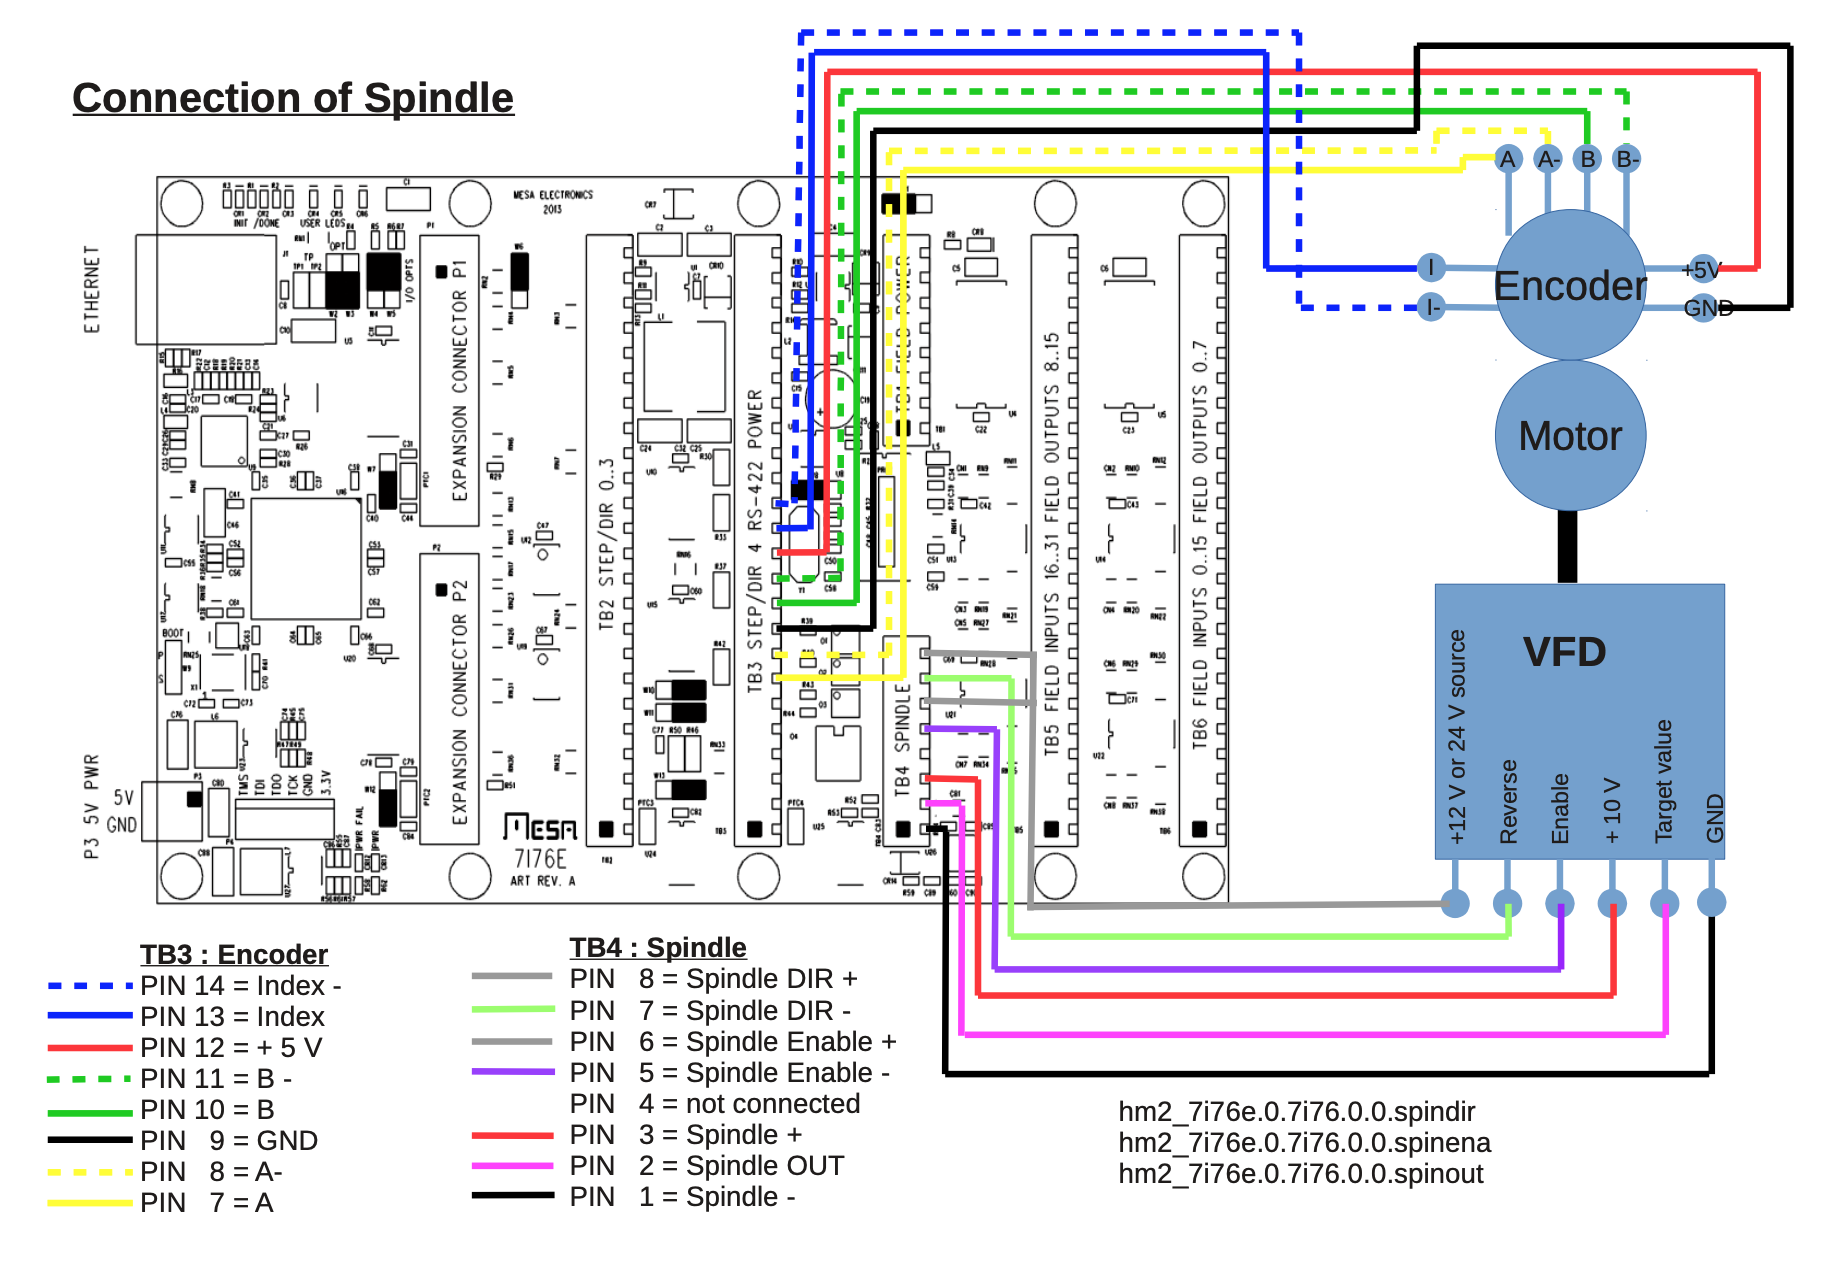 Spindle pins Mesa 7i76e + power source - LinuxCNC